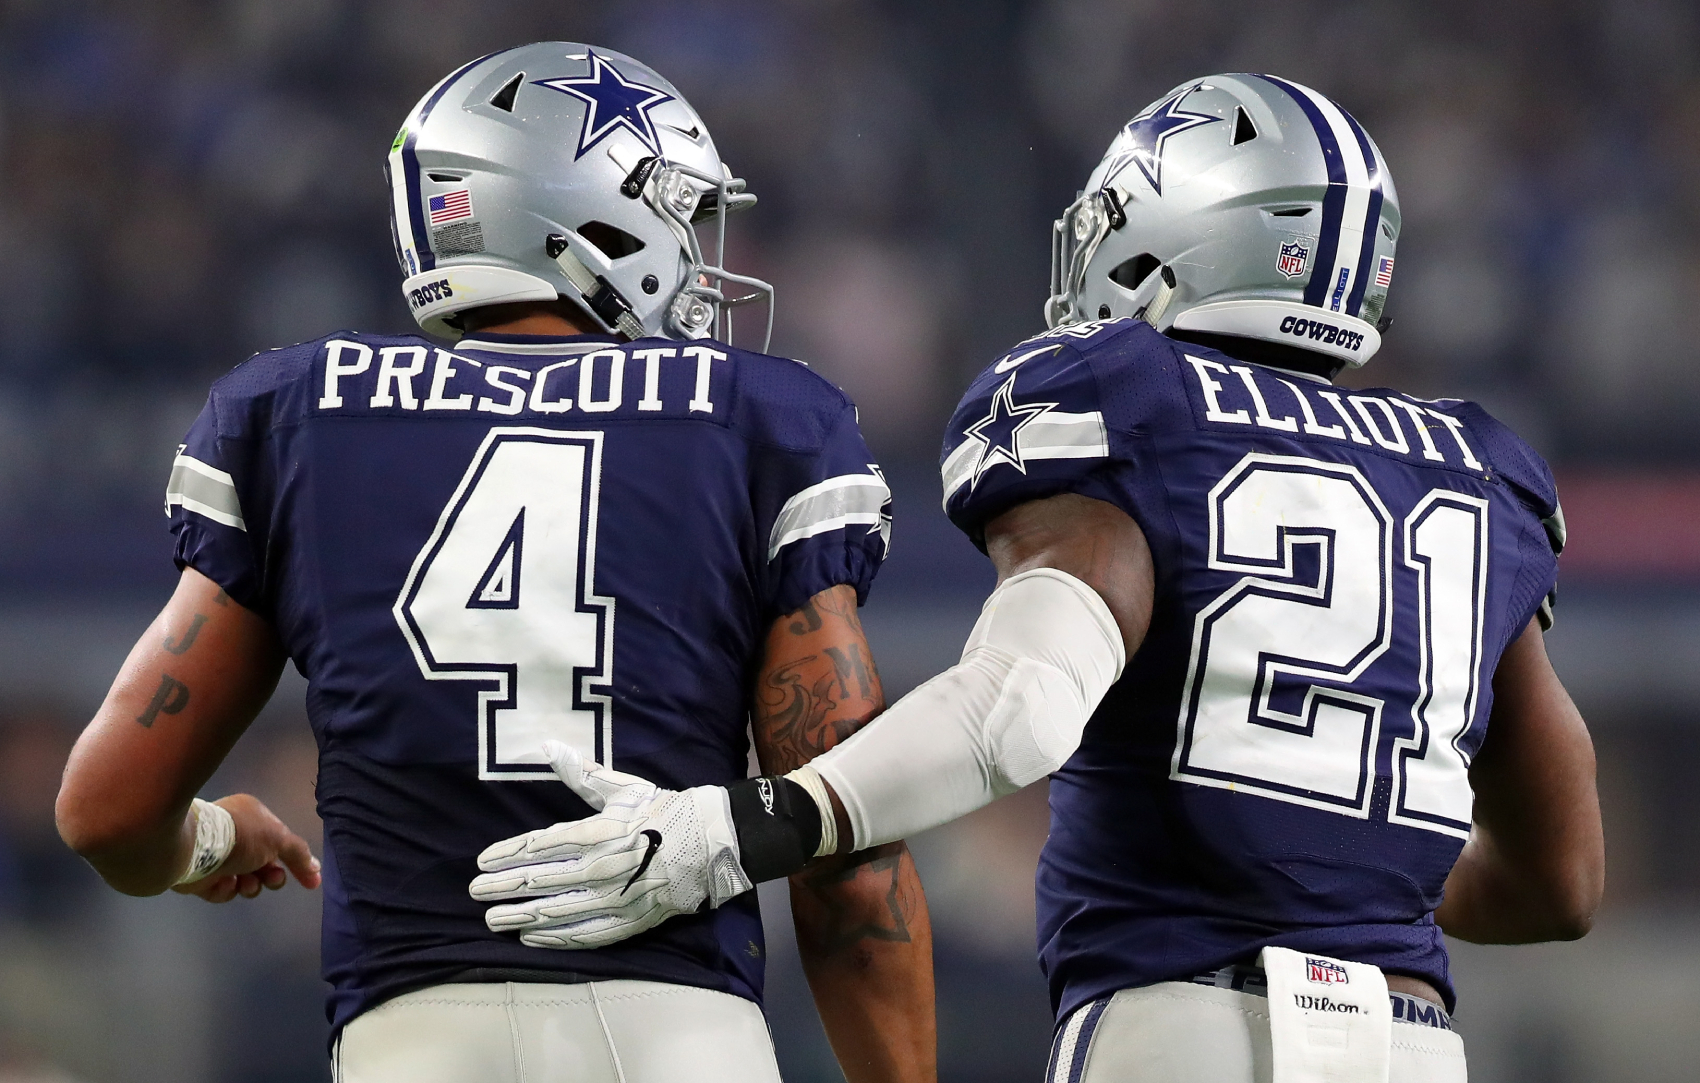 Dallas Cowboys QB Dak Prescott suffered a horrific injury on Sunday. After the game, Ezekiel Elliott sent an emotional message to his friend.